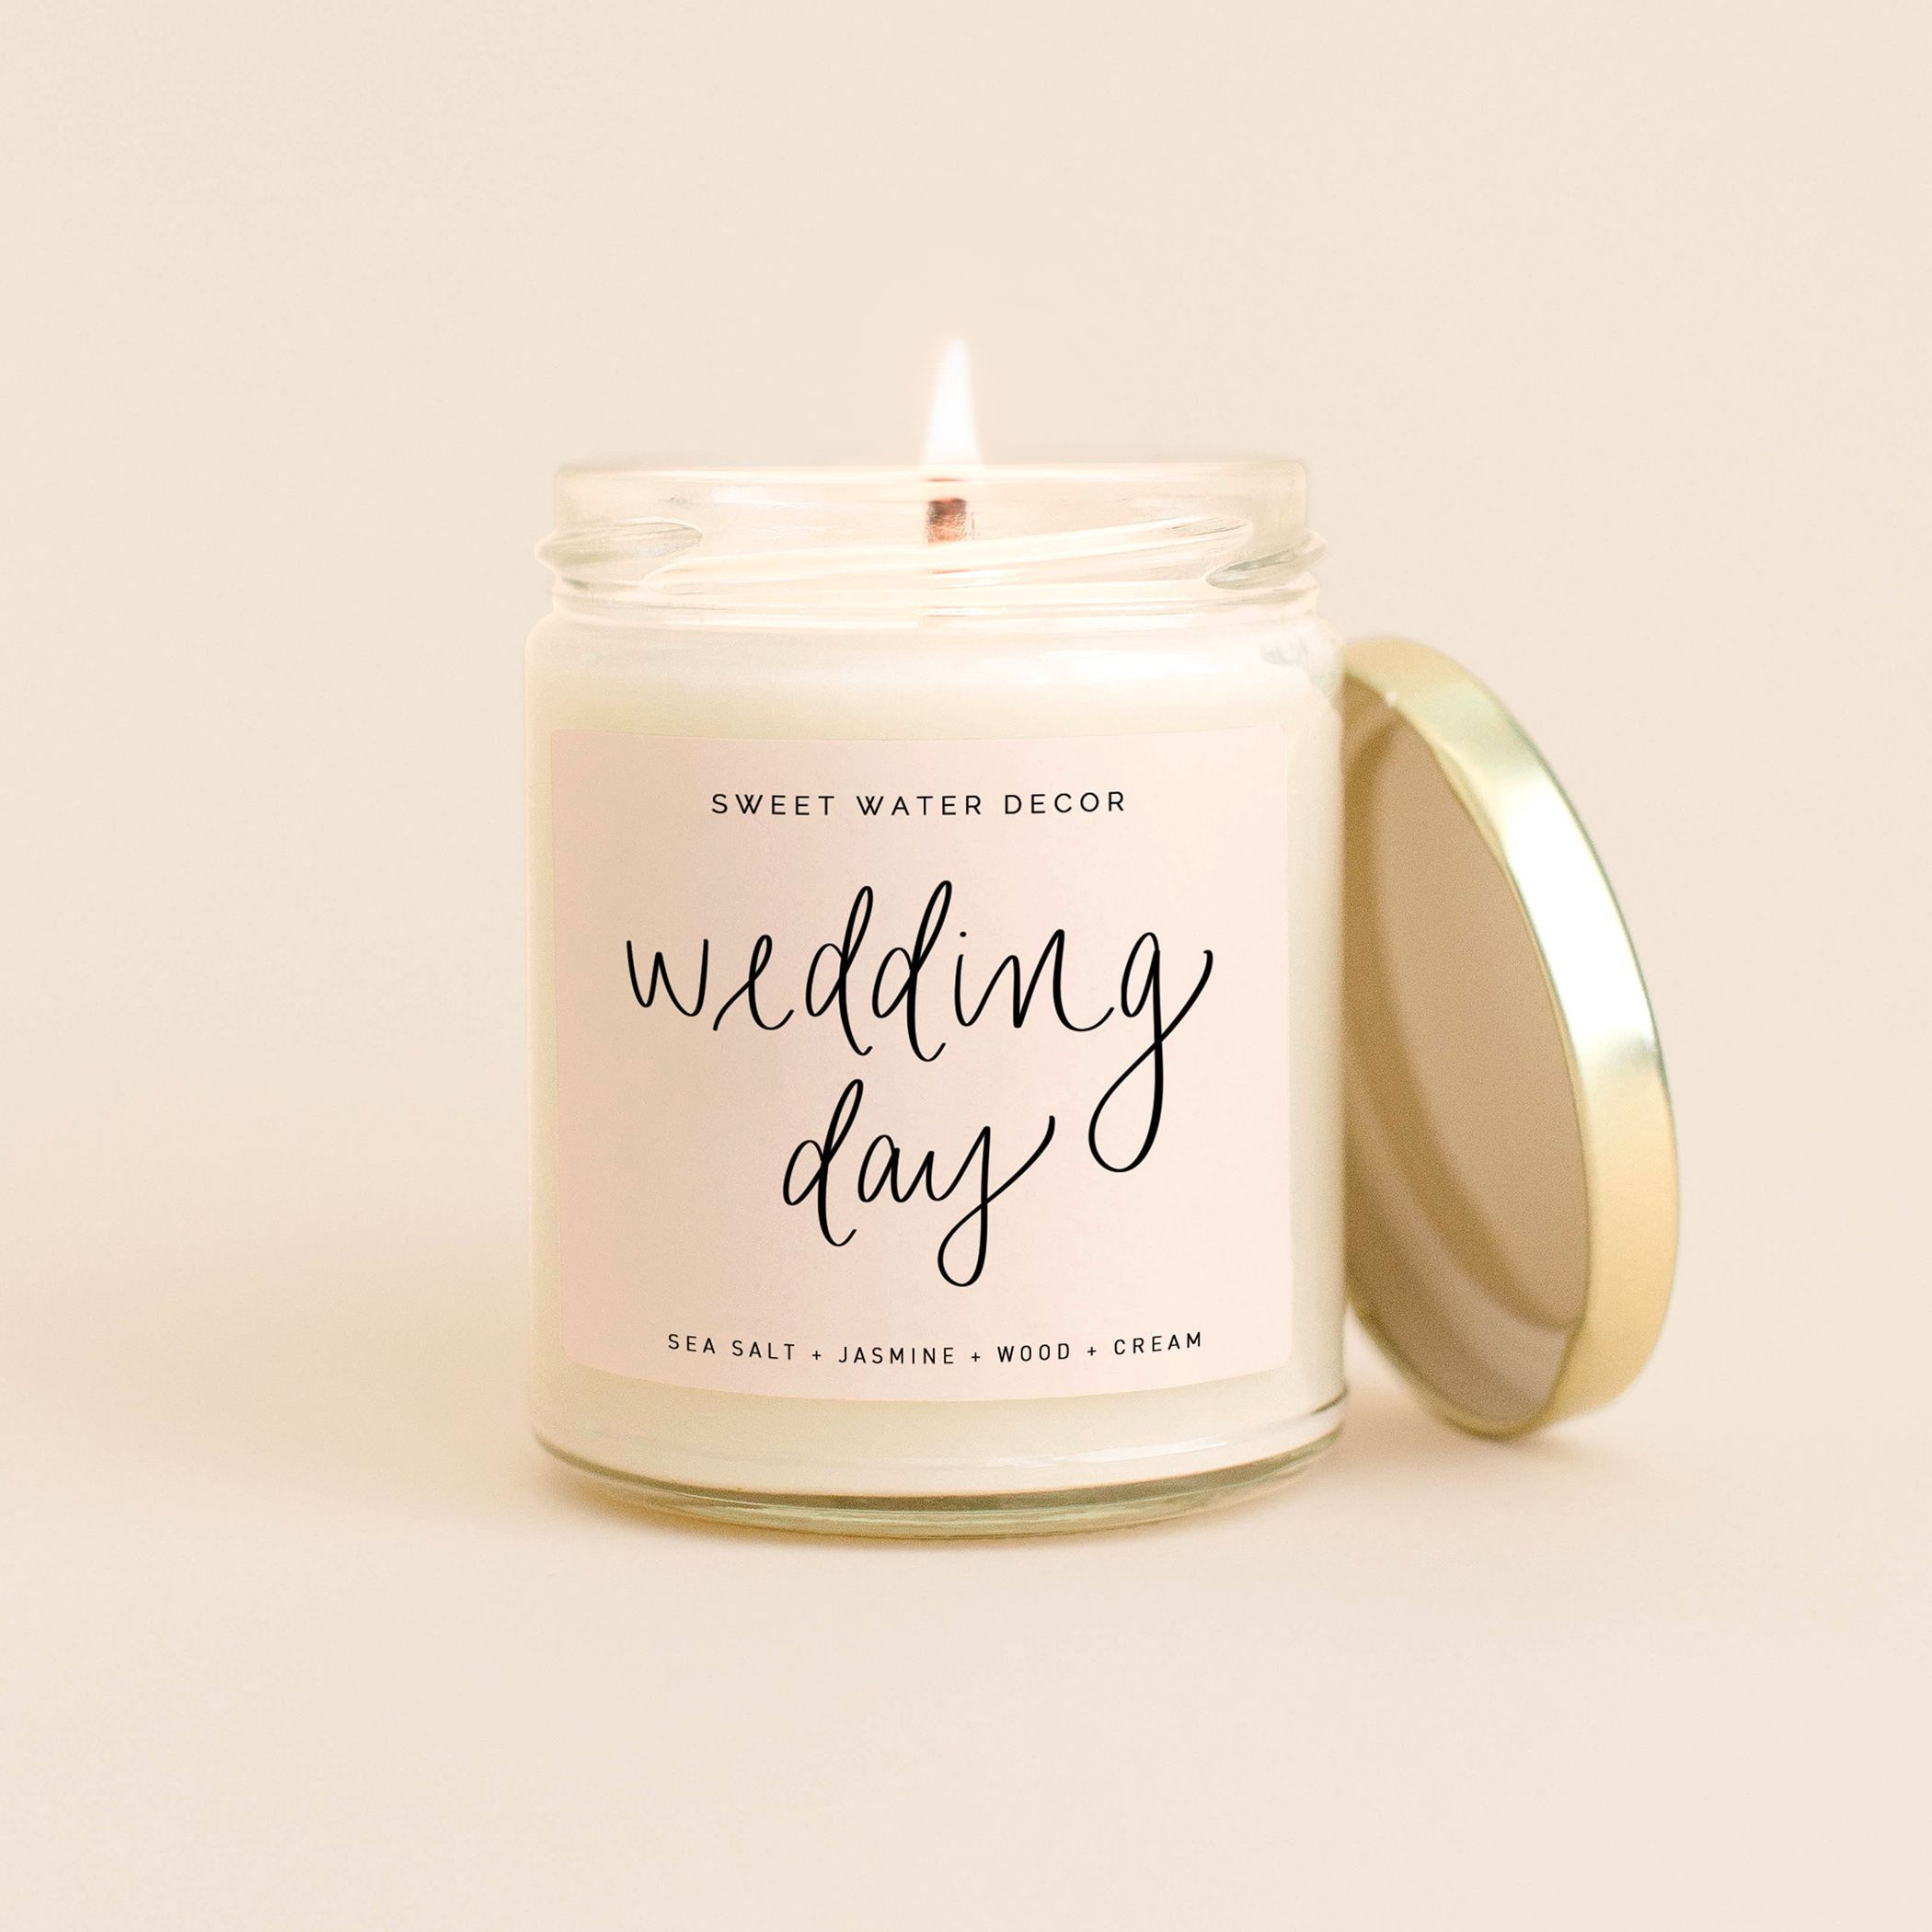 Wedding Day Candle The Day Of Soy Candle Bride Candle Bride To Be Gift Engagement Gift Wedding Planner Gift P In 2020 Sweet Water Decor Soy Candles Candles